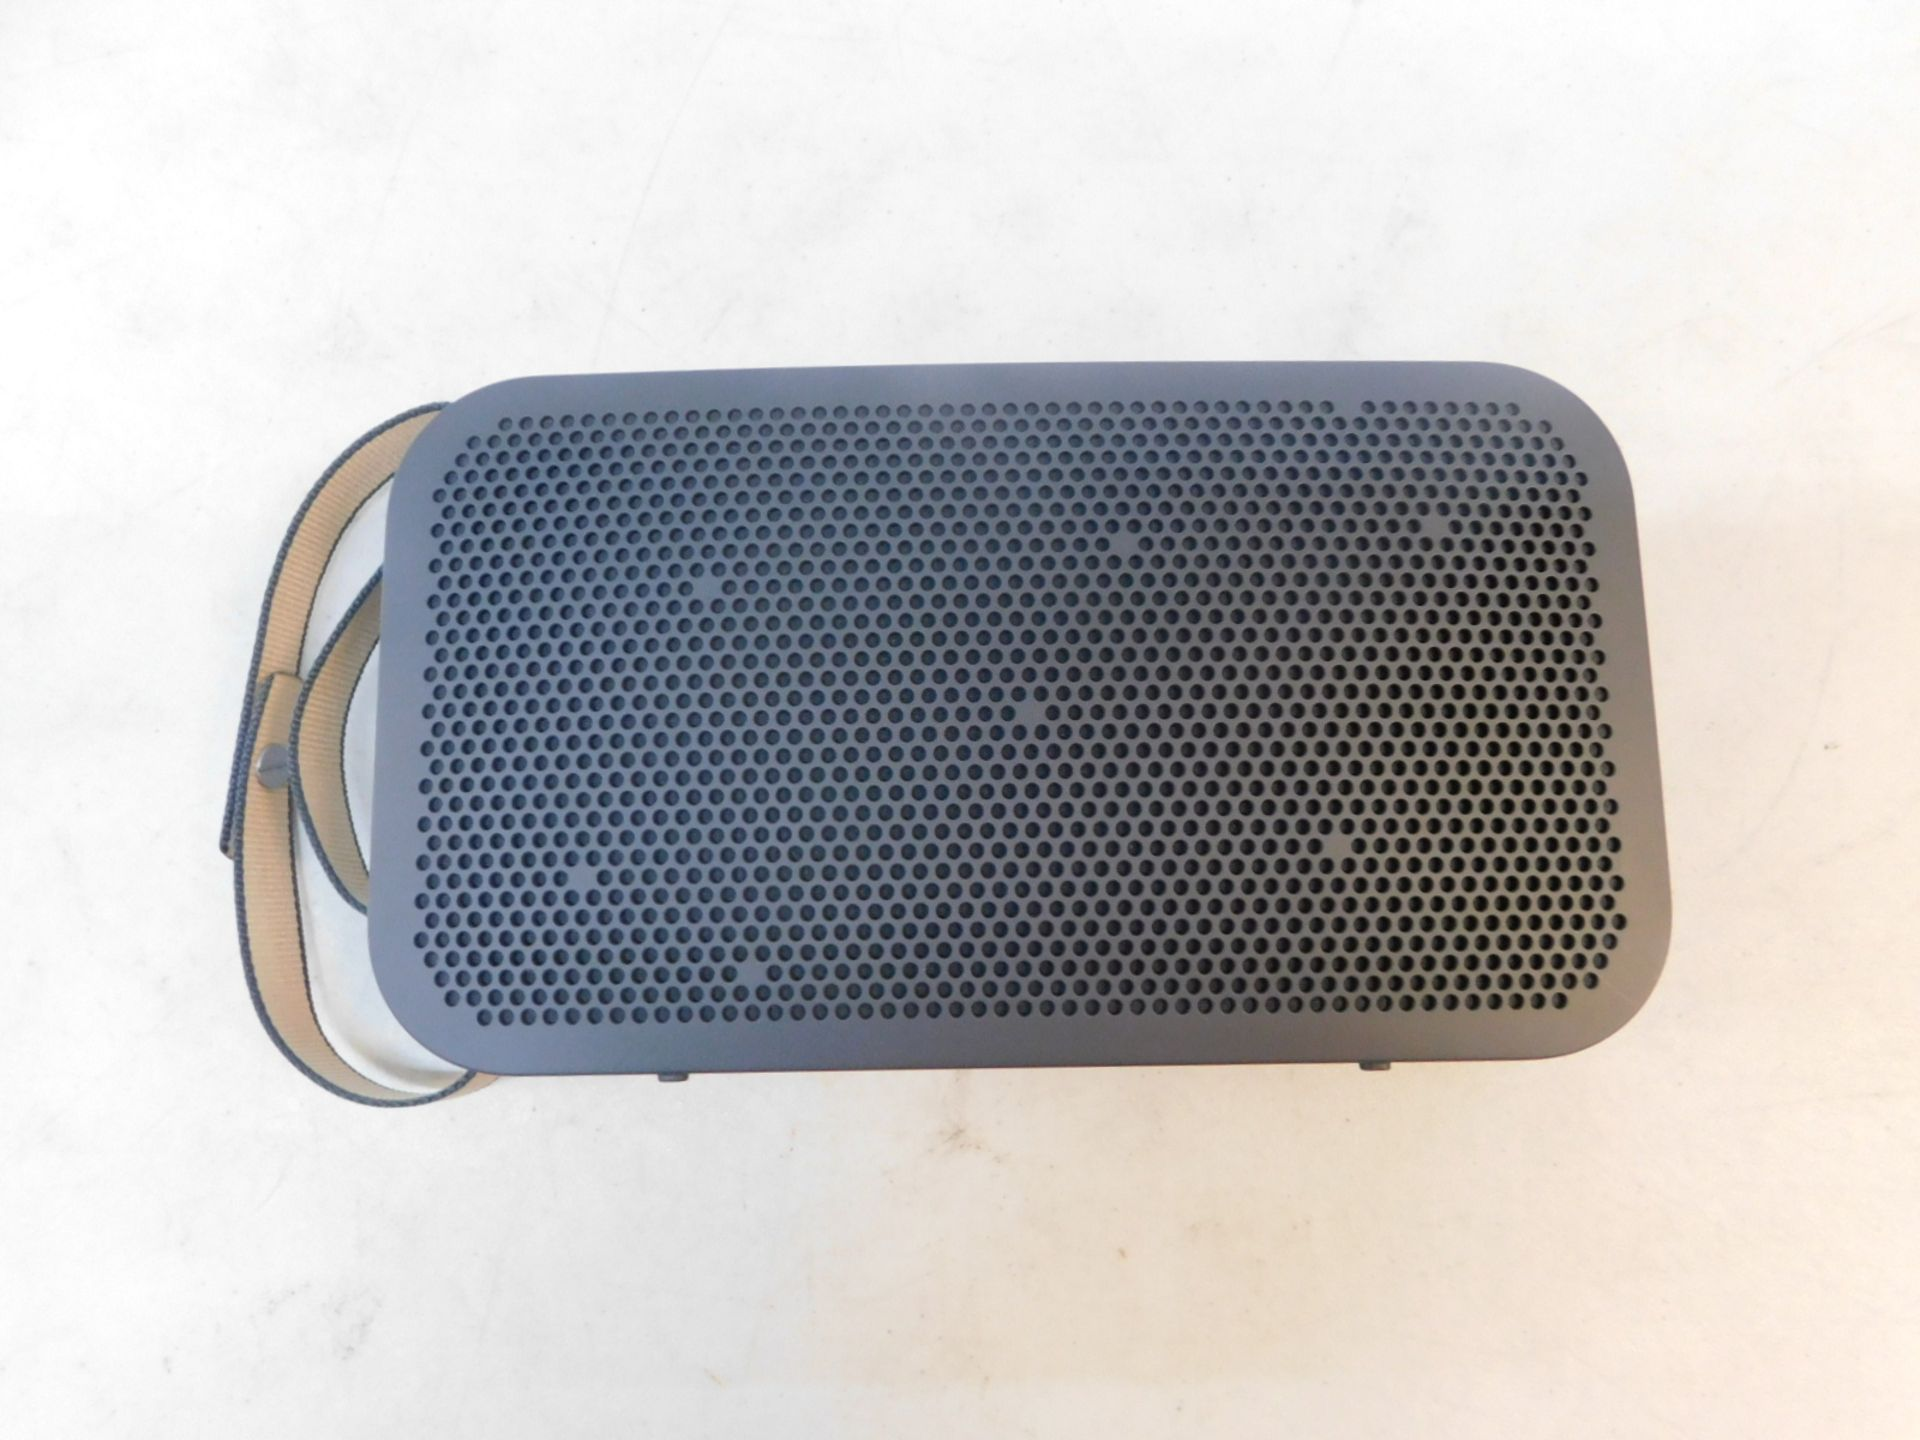 1 BANG AND OLUFSEN BEOPLAY A2 ACTIVE BLUETOOTH SPEAKER RRP £349